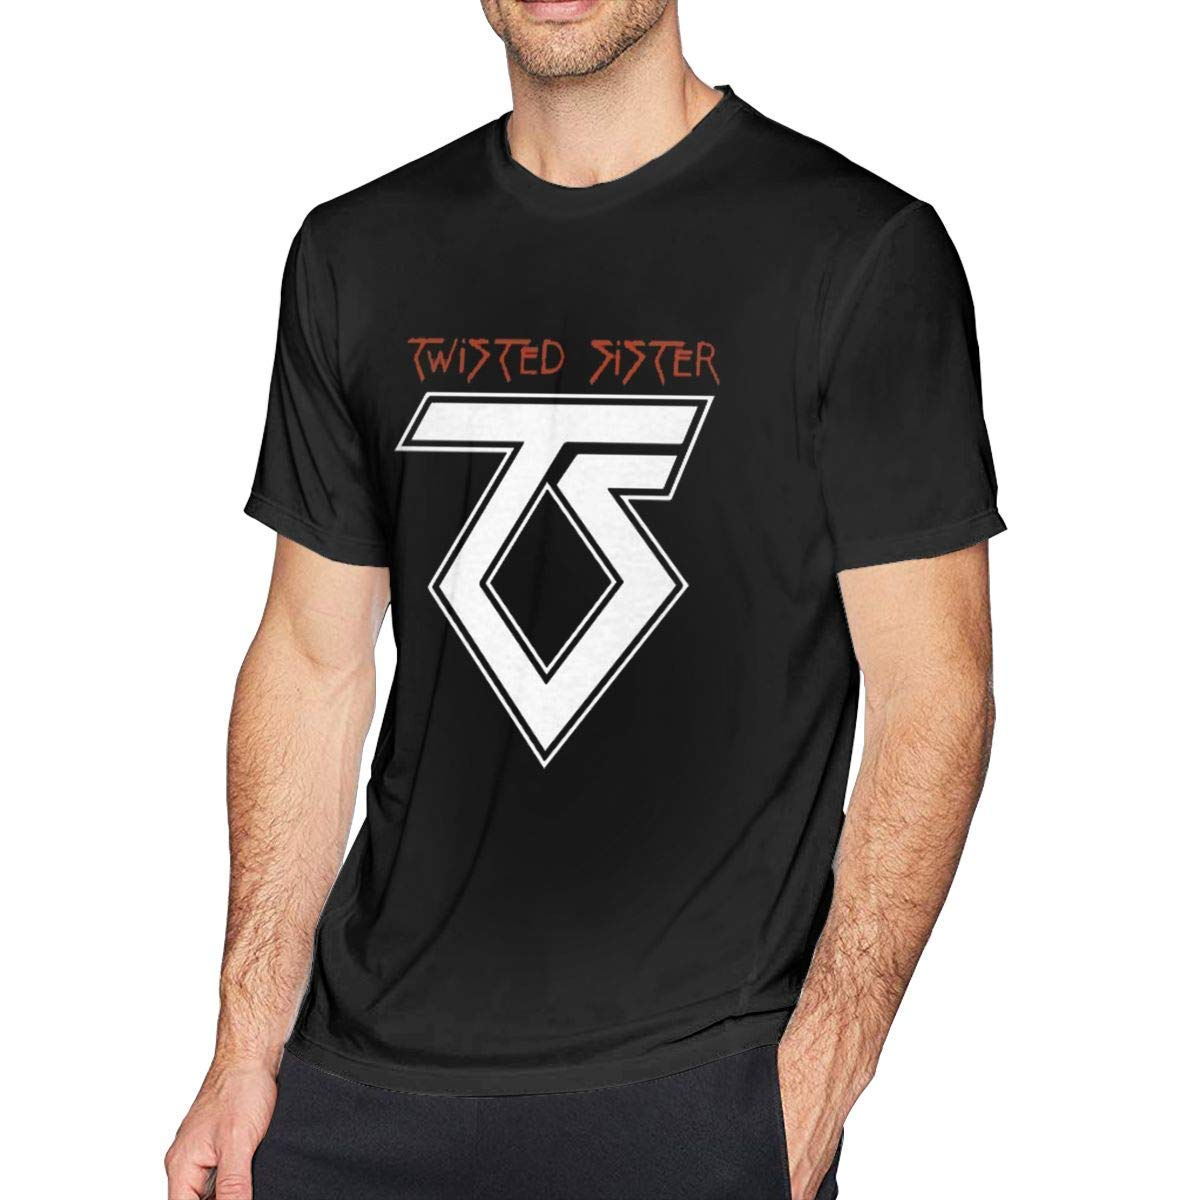 Twisted Sister Band Old School Rock Adult Regular Casual Short T Shirt Tee Black